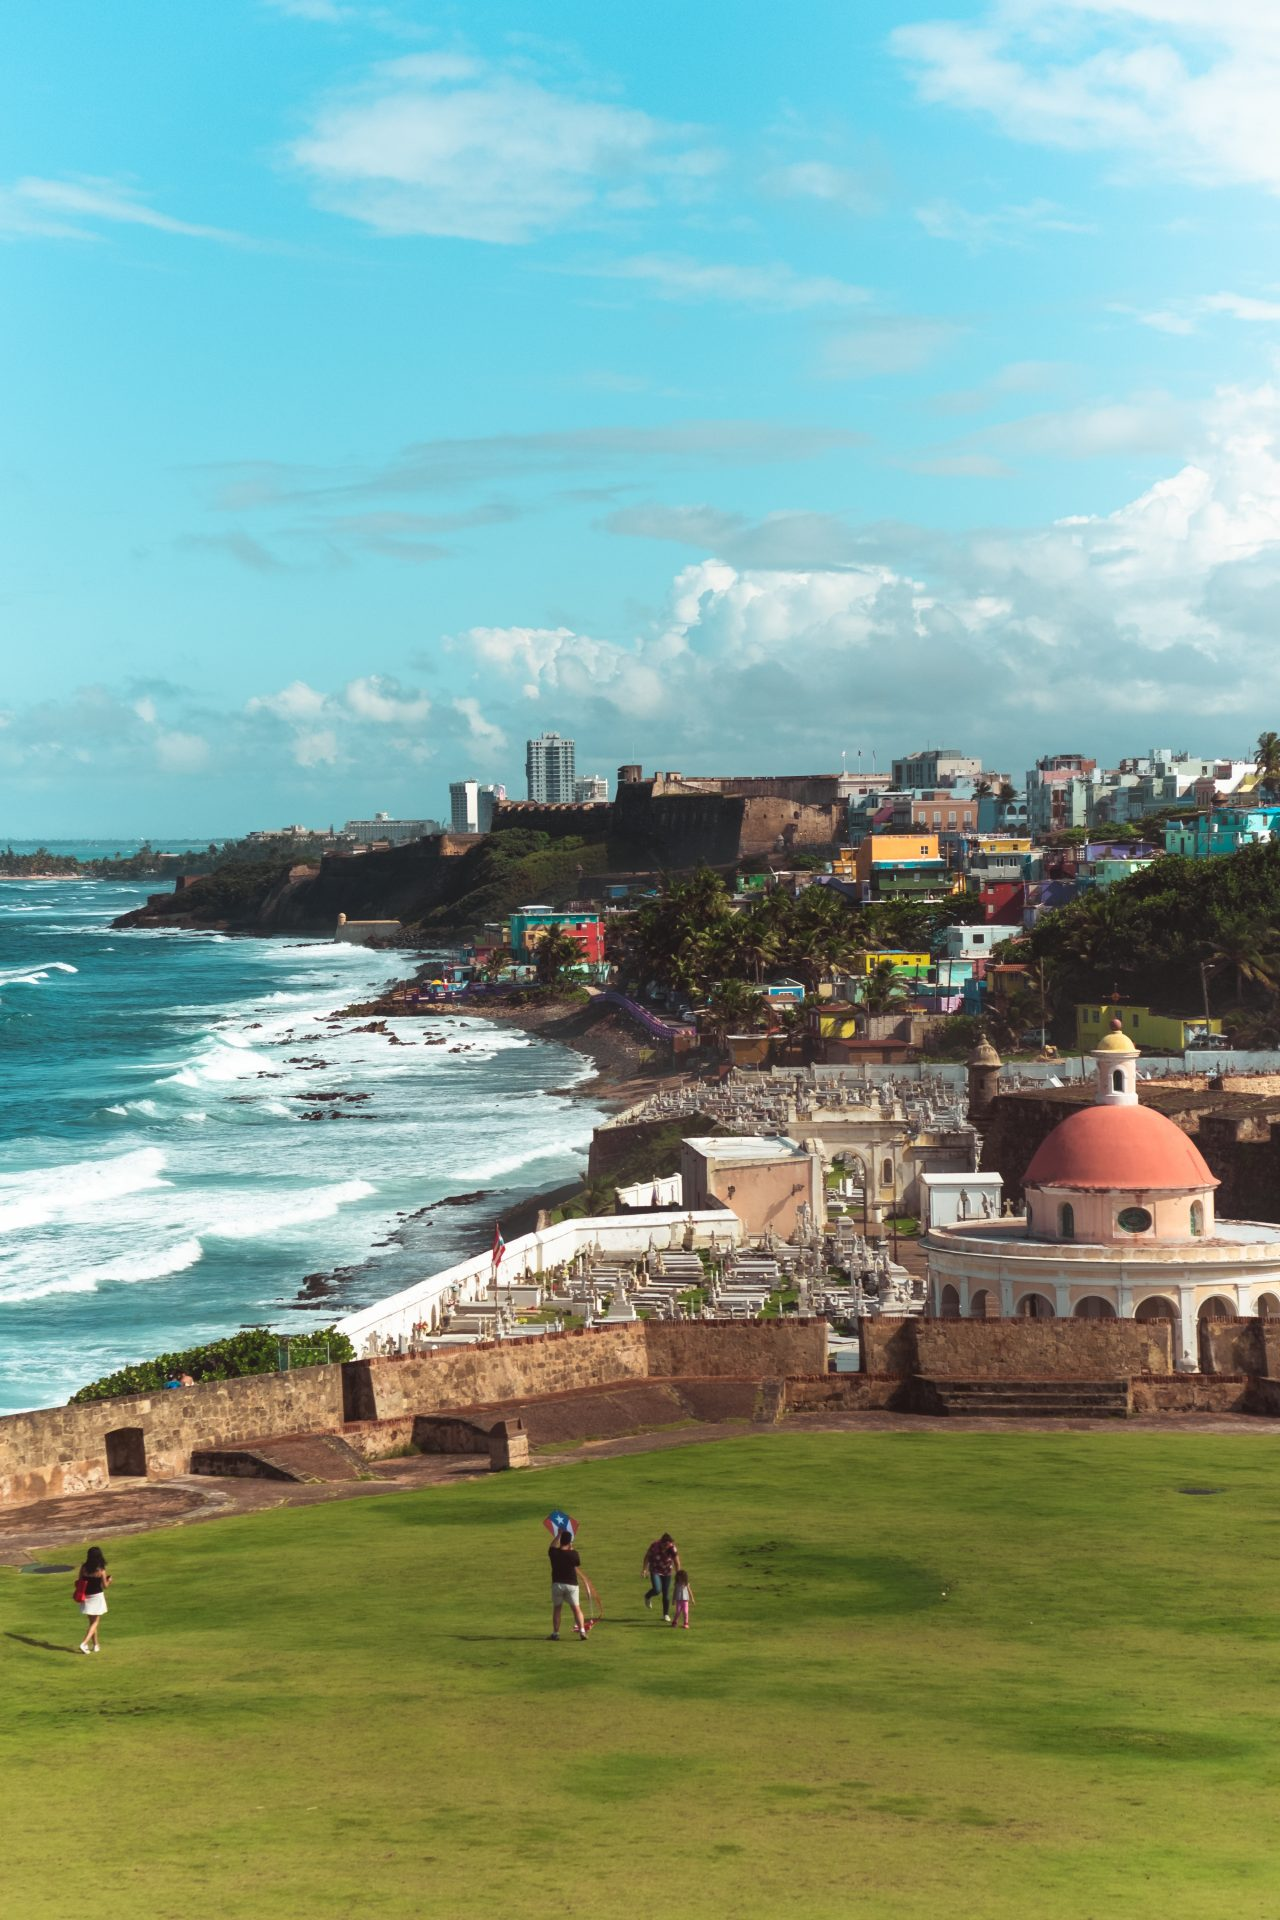 View of the cemetery and ocean from old San juan Puerto Rico photo by Jo Kassis